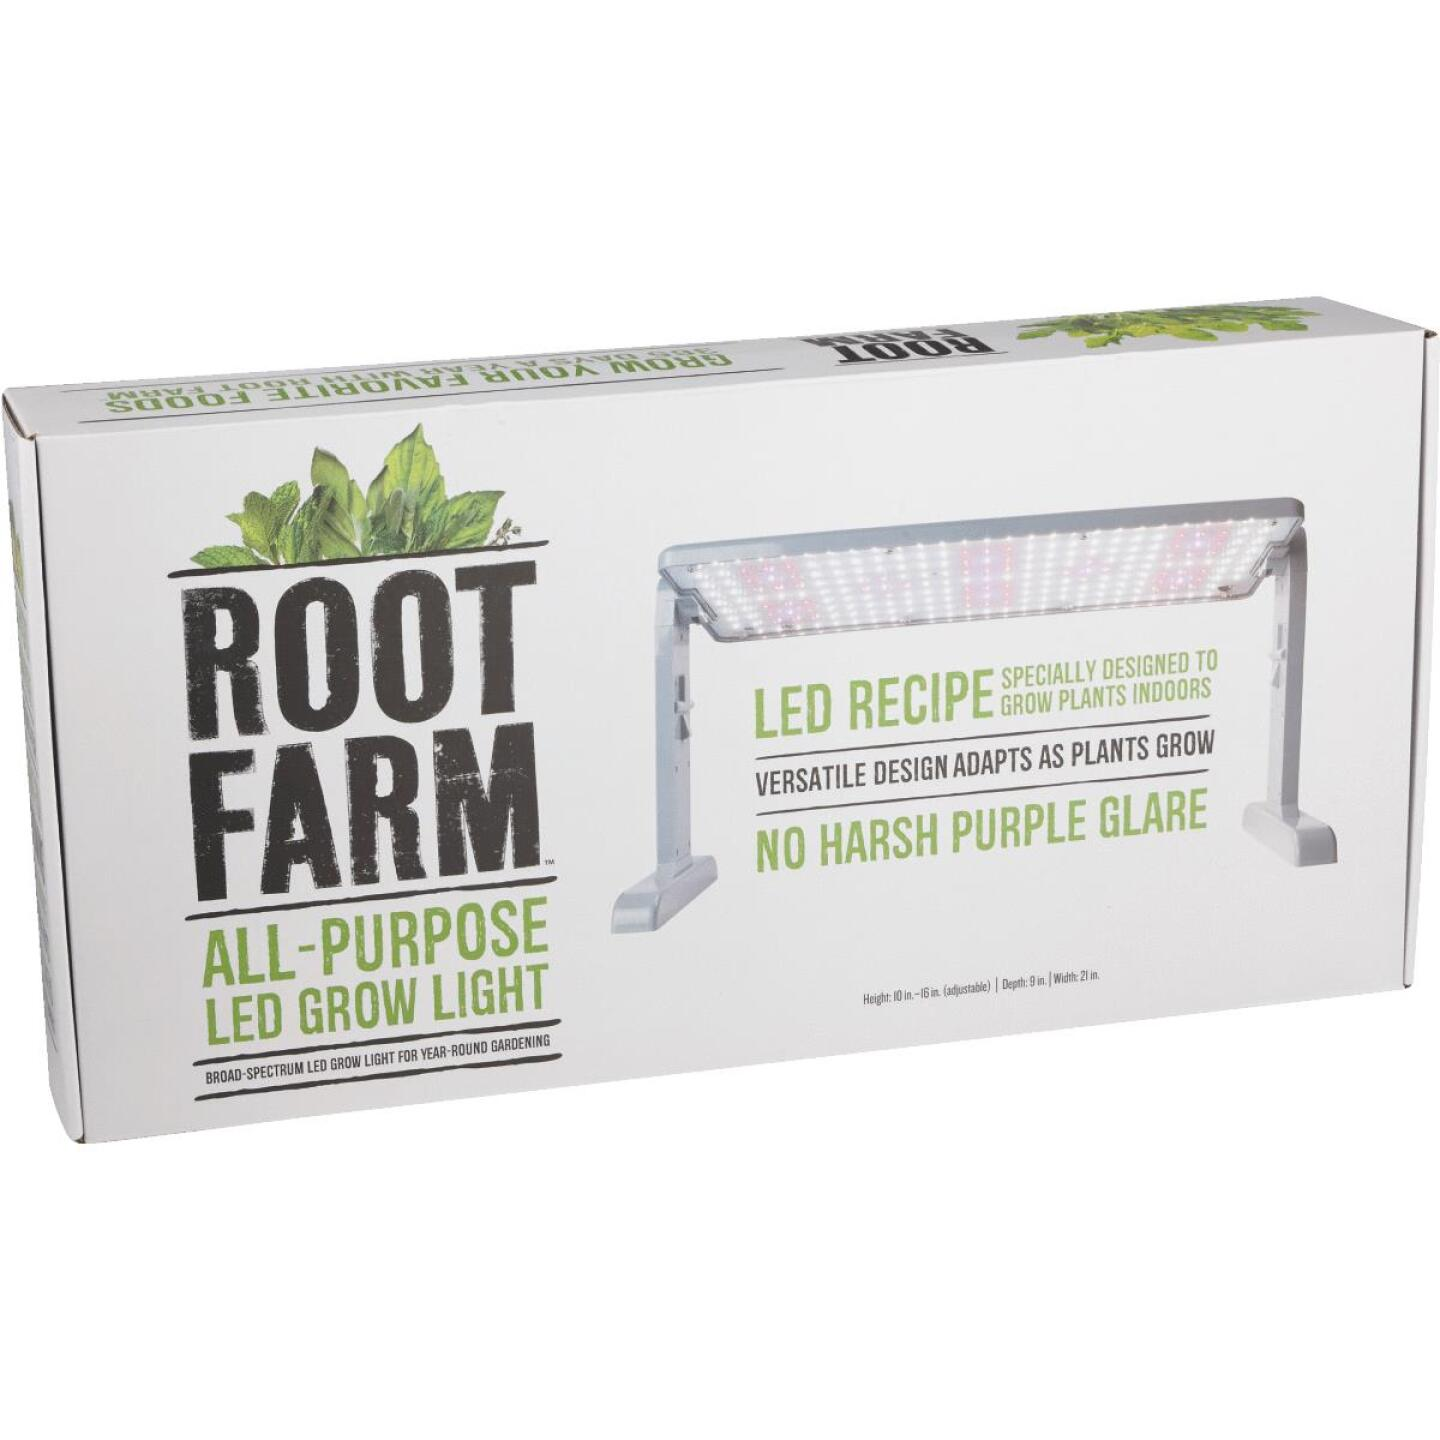 Root Farm 45W LED Plant Light Image 3